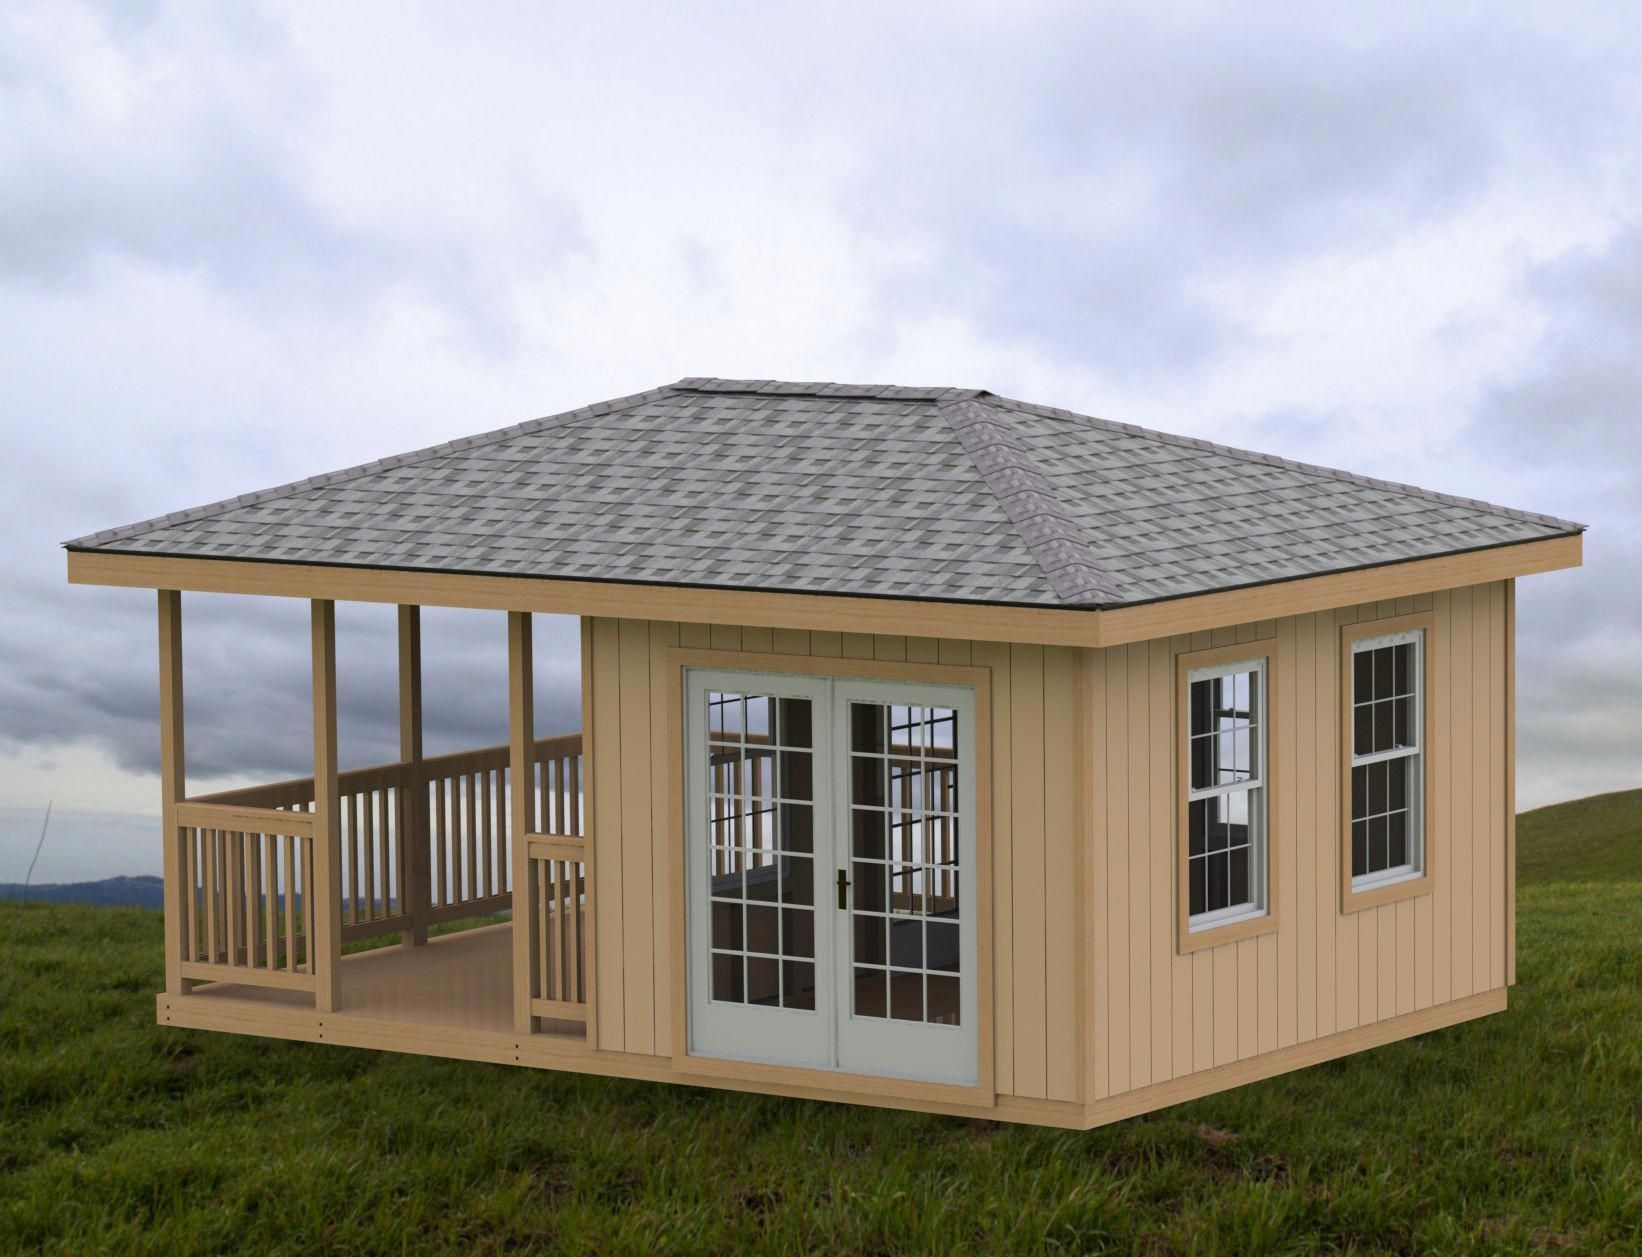 Thinking About Shed Plans 10x16 This Is The Place For More Info Diy Shed Plans Wood Shed Plans Shed Design